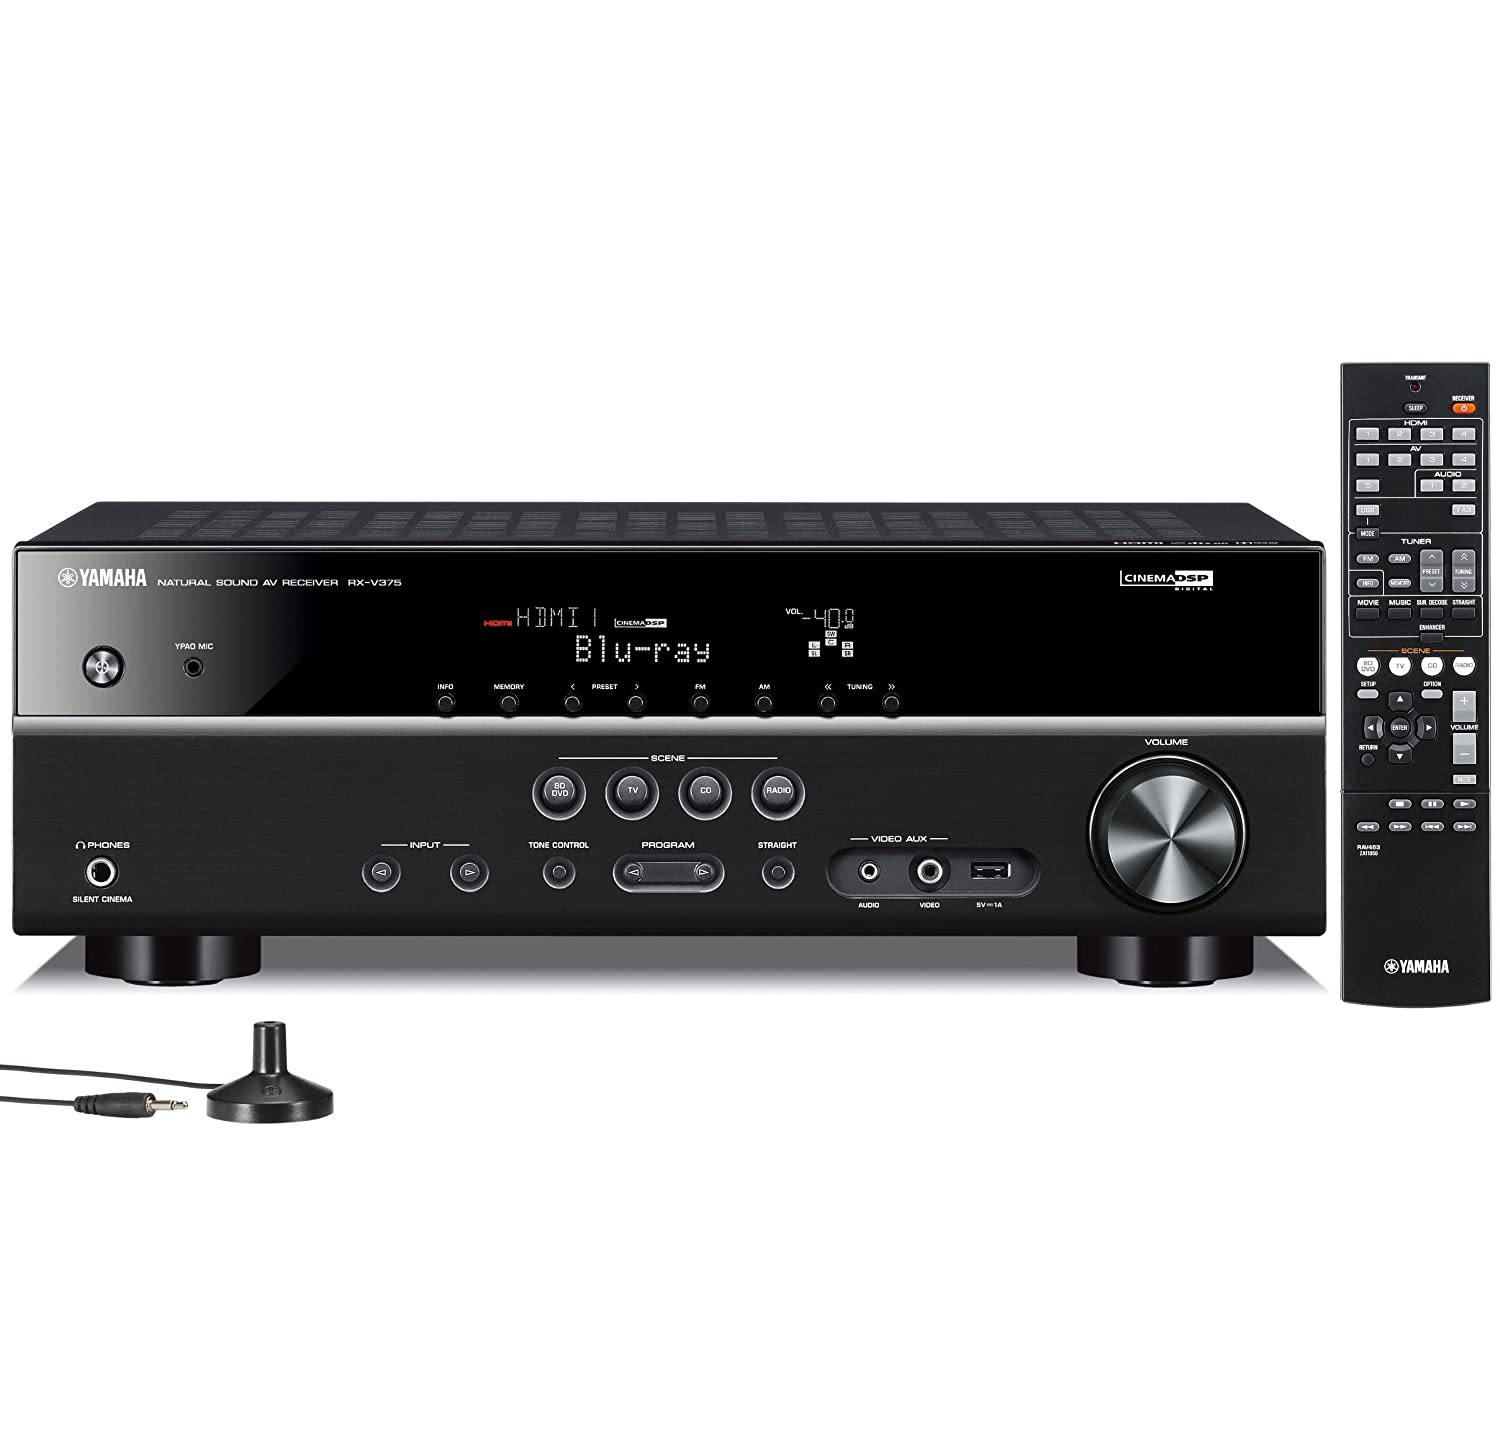 Yamaha RX-V375 5.1 Channel 3D A/V Home Theater Receiver